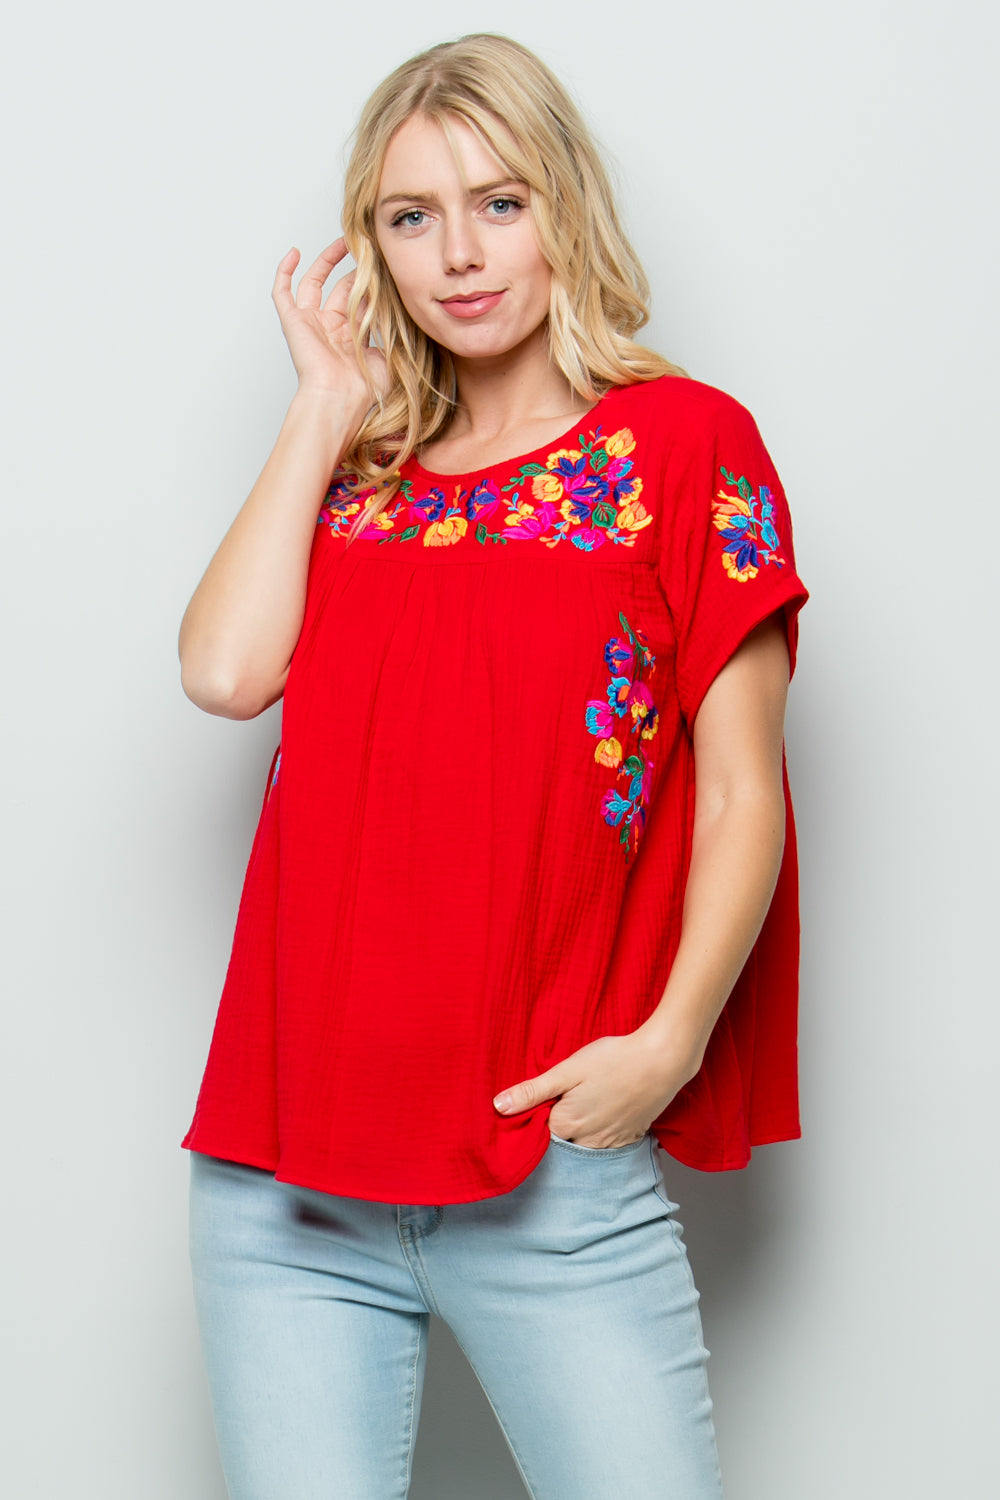 T2185 Floral Embroidery - Fuchsia